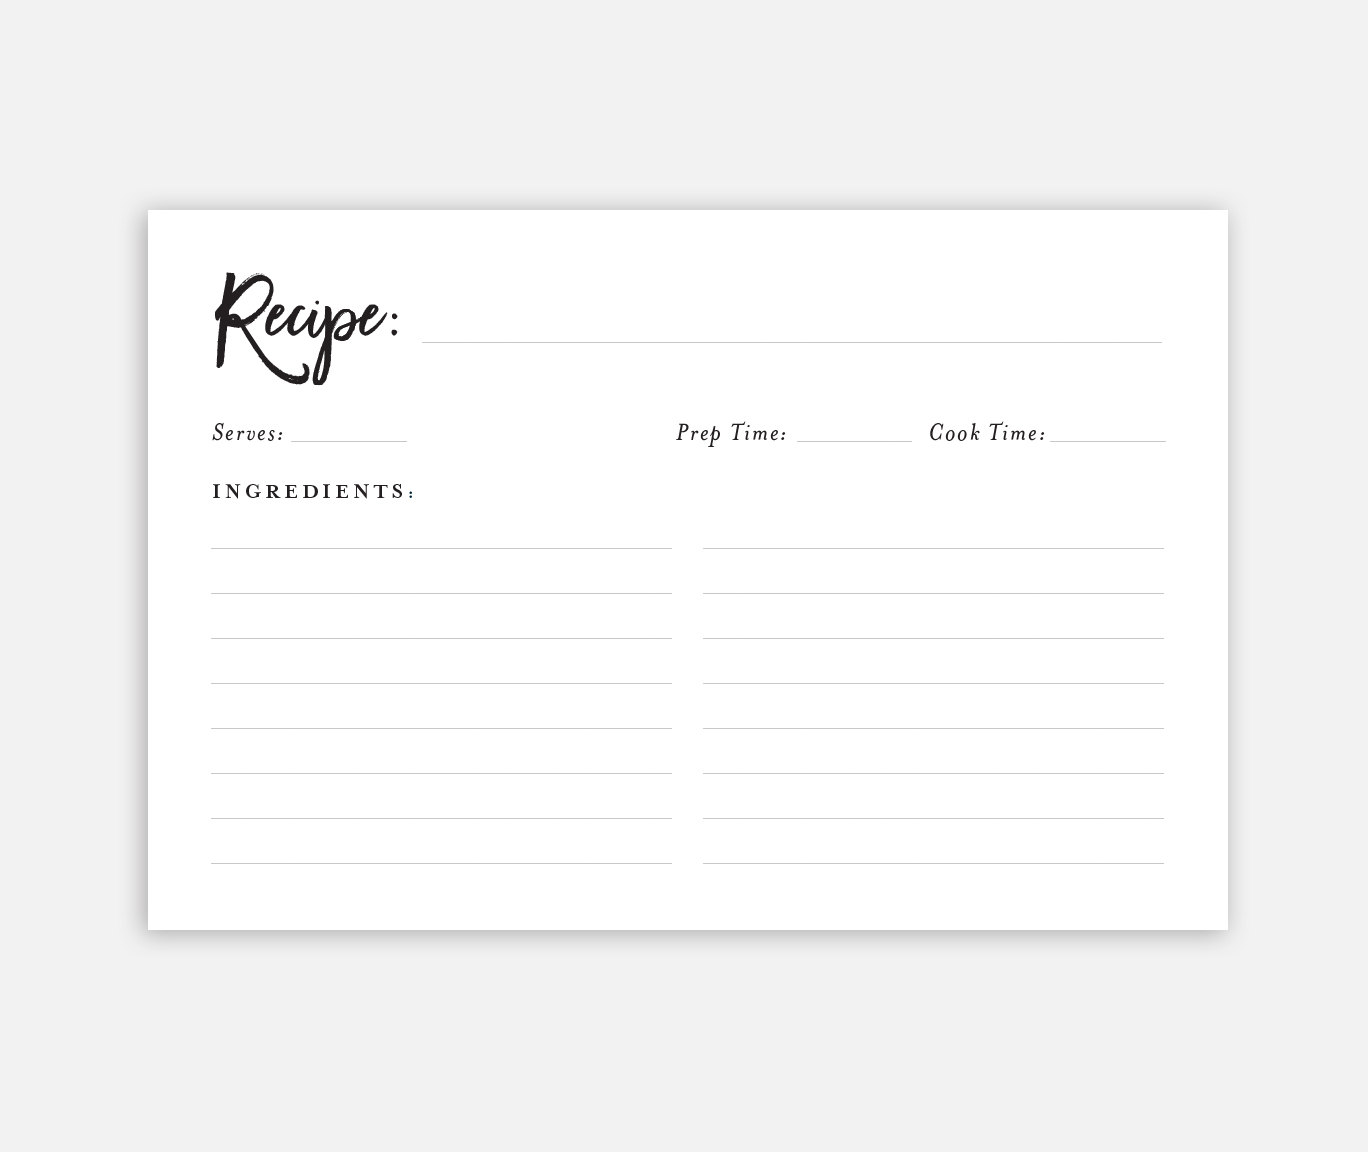 Recipe Card Free Printable | Recipe cards, Free printable and Recipes